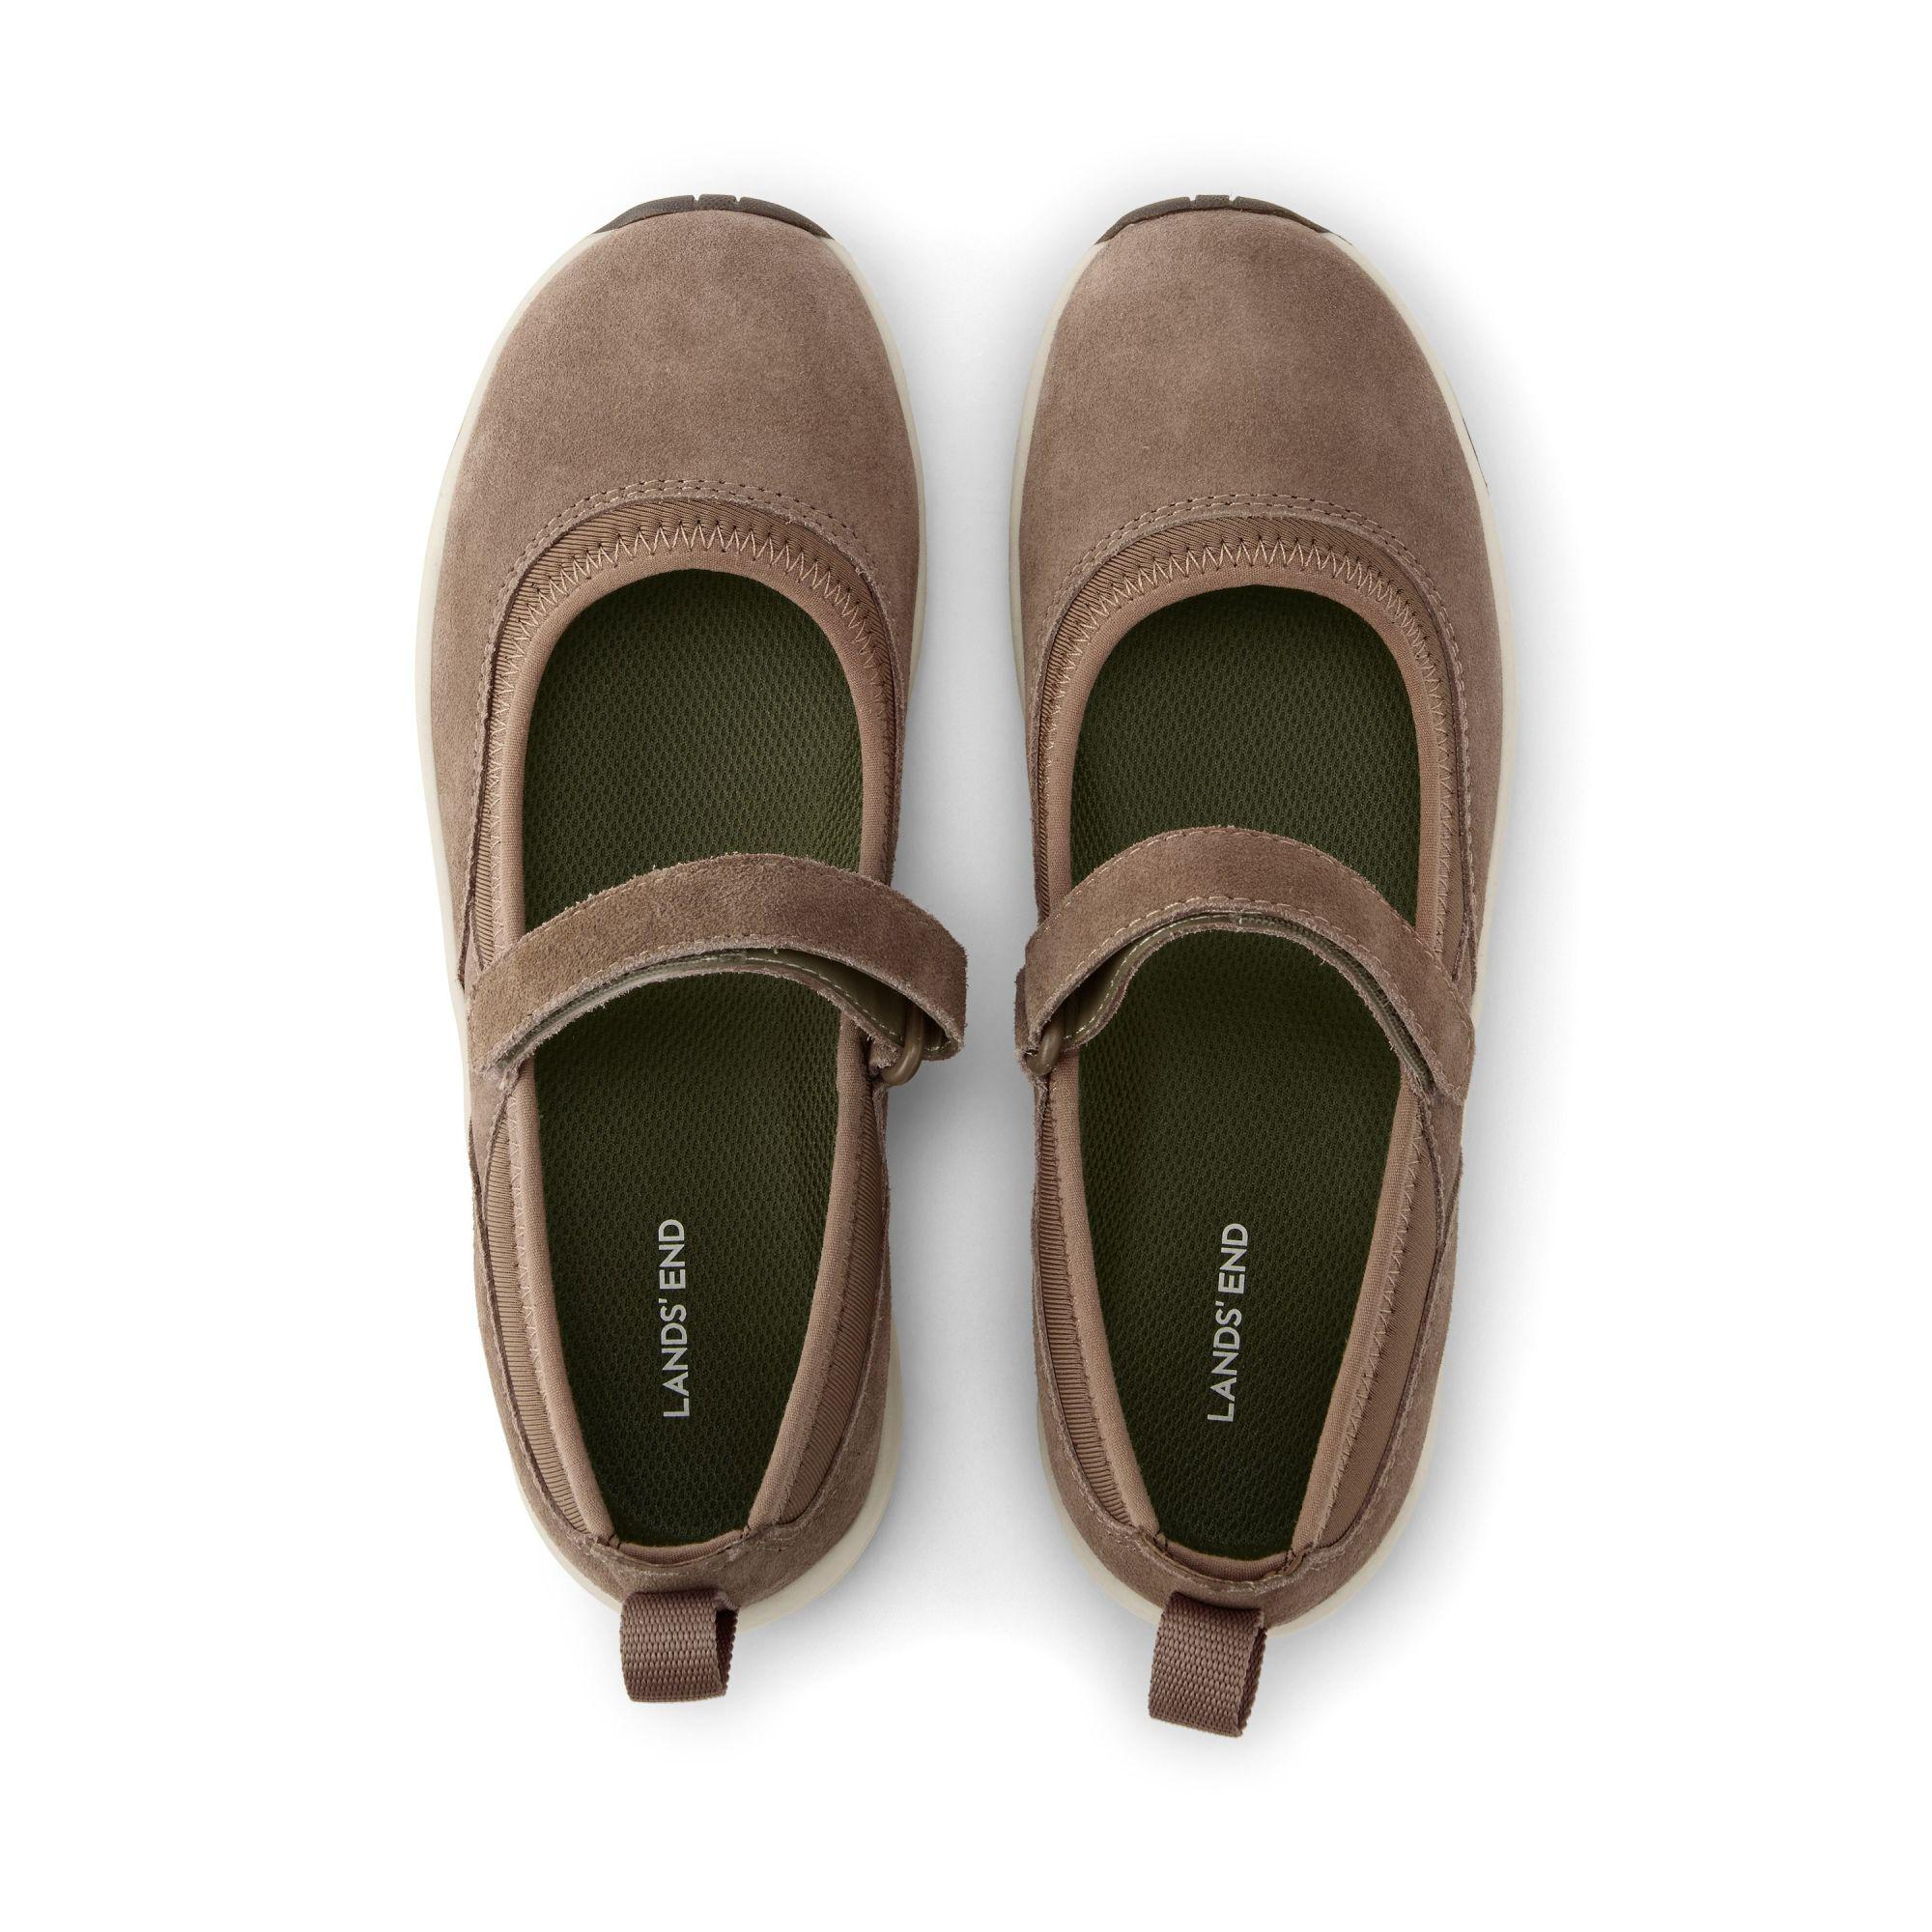 0ab883d4c9f Lands  End - Brown Wide Everyday Comfort Mary Jane Shoes - Lyst. View  fullscreen